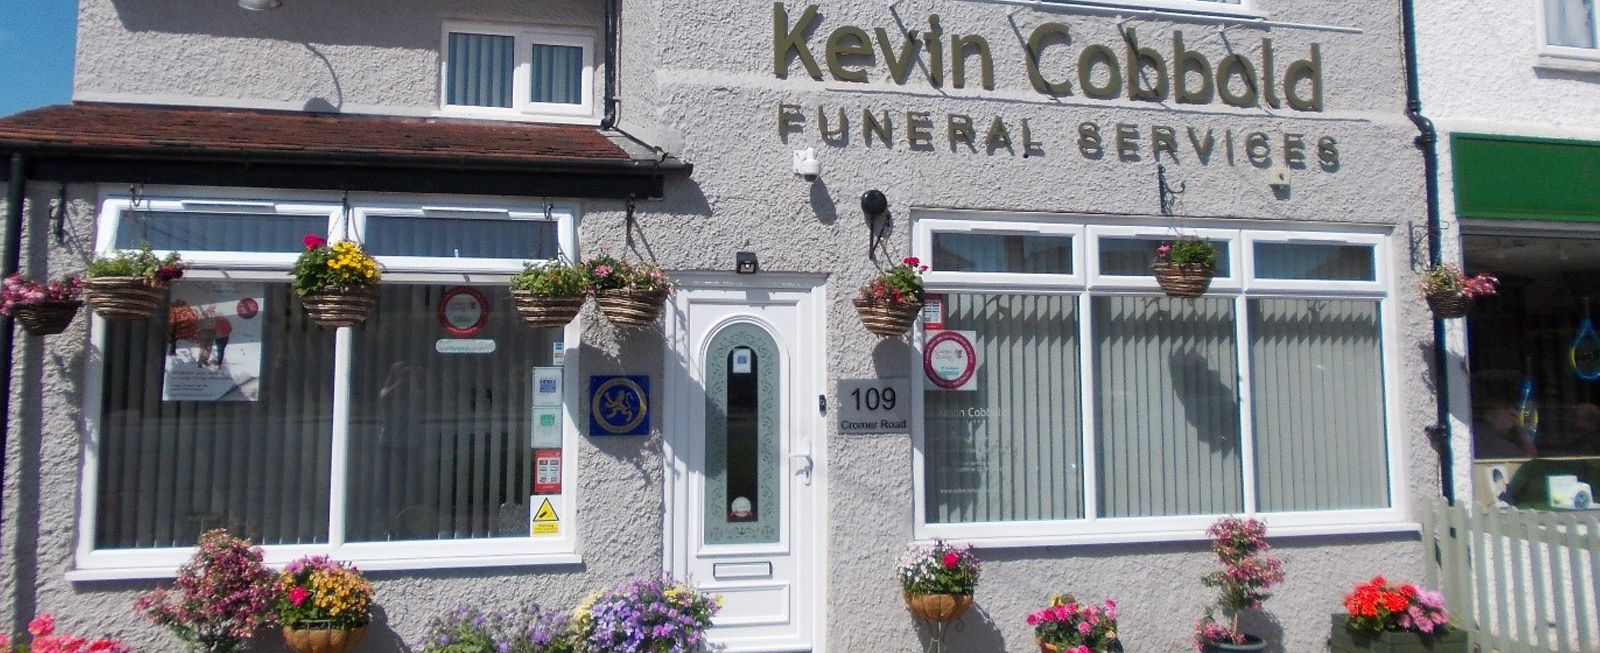 Kevin Cobbold Funeral Services Office in Hellesdon Norwivch